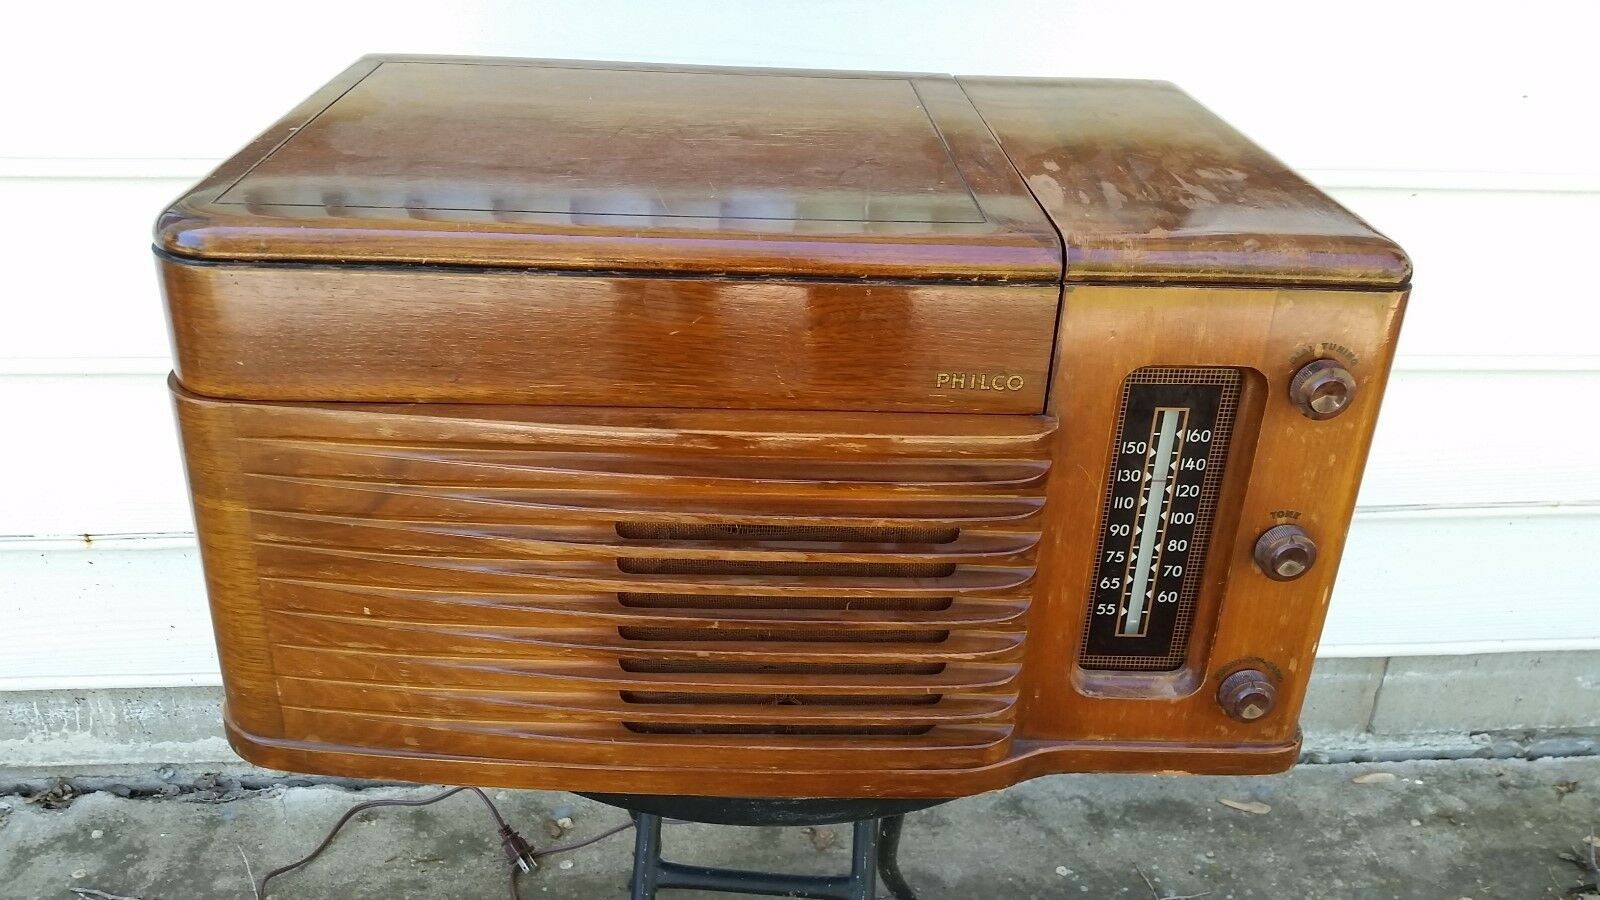 Vintage Philco Radio Record Player Wood Case, Model 46-1203